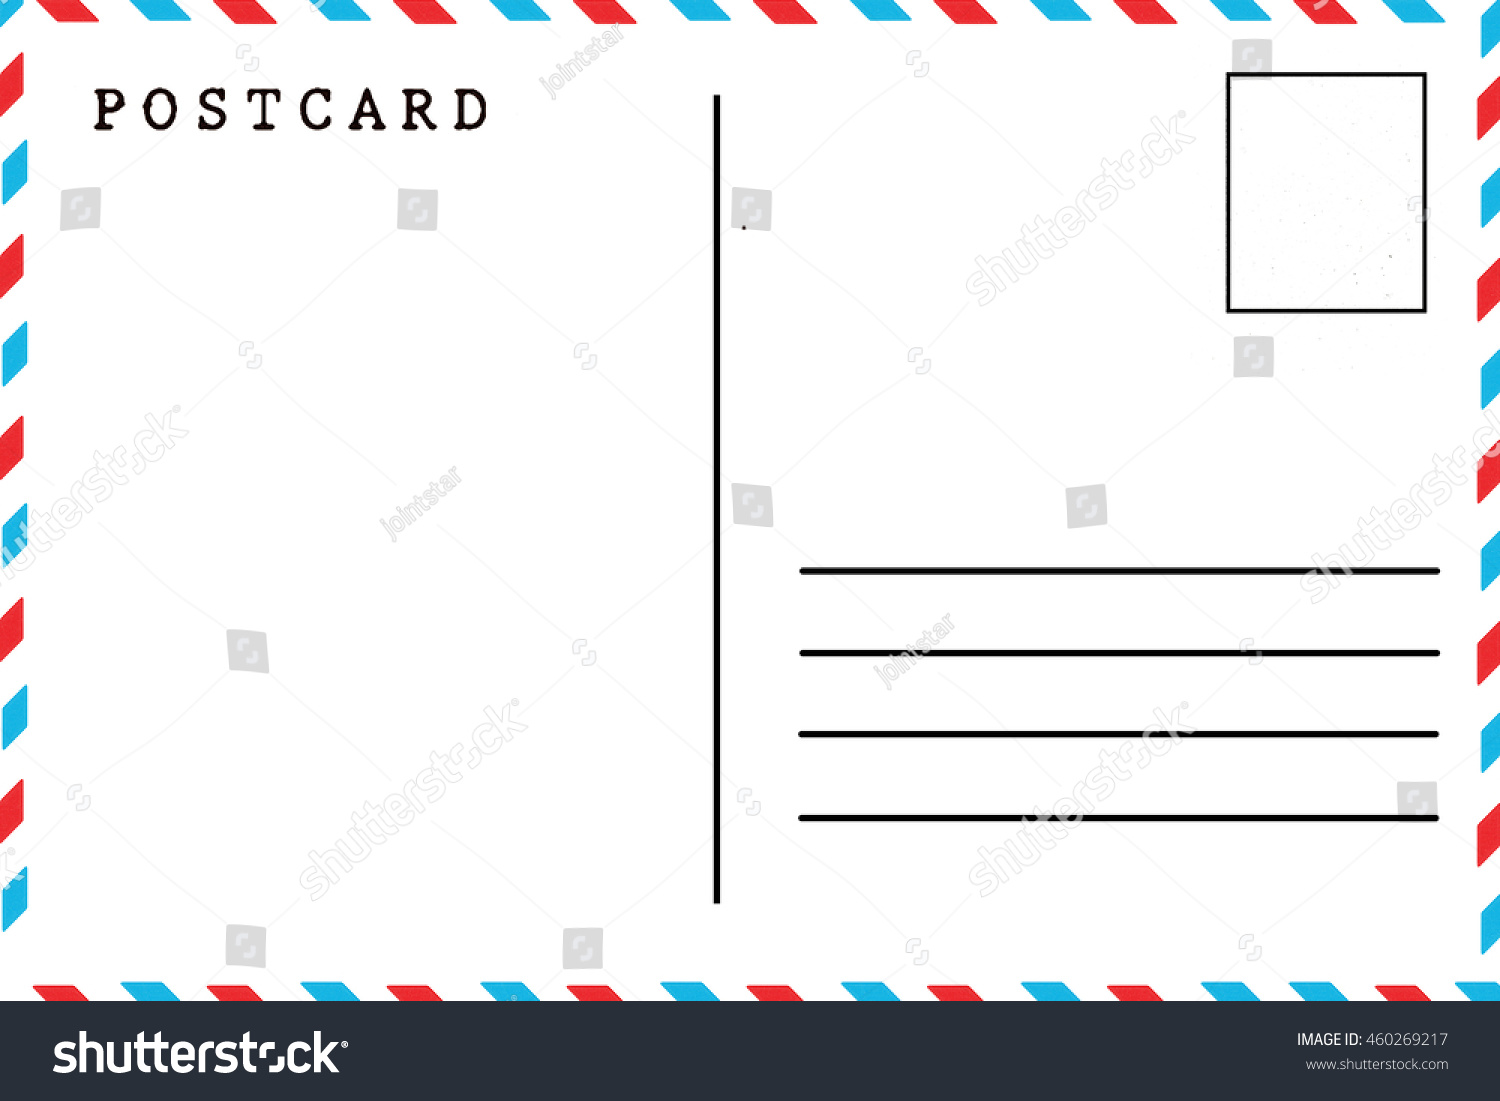 Back airmail blank postcard template stock photo edit now back of airmail blank postcard template maxwellsz